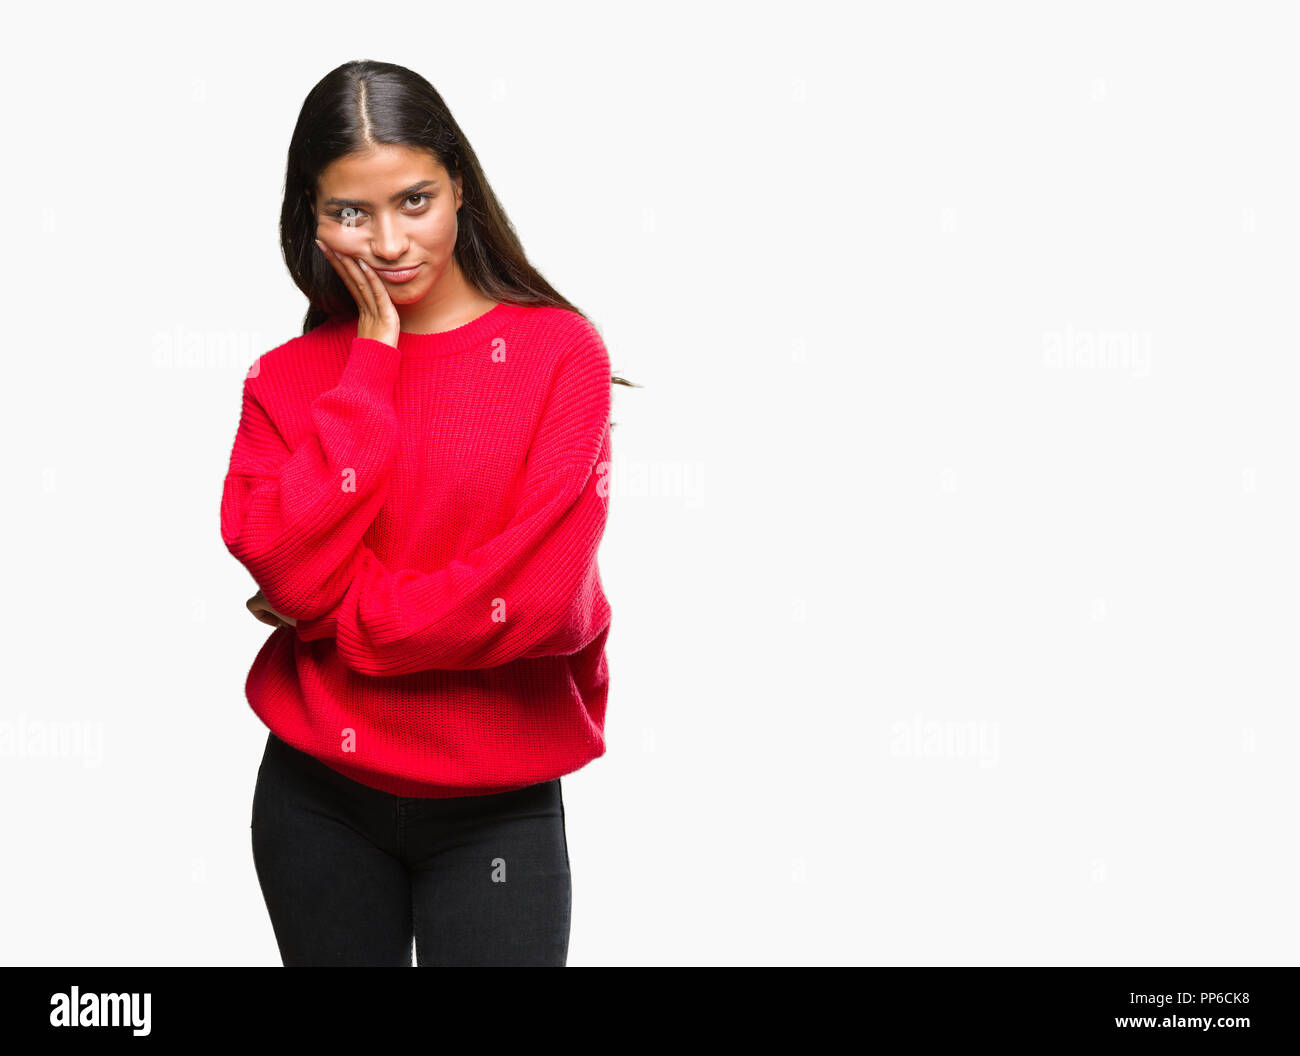 Young beautiful arab woman wearing winter sweater over isolated background thinking looking tired and bored with depression problems with crossed arms Stock Photo